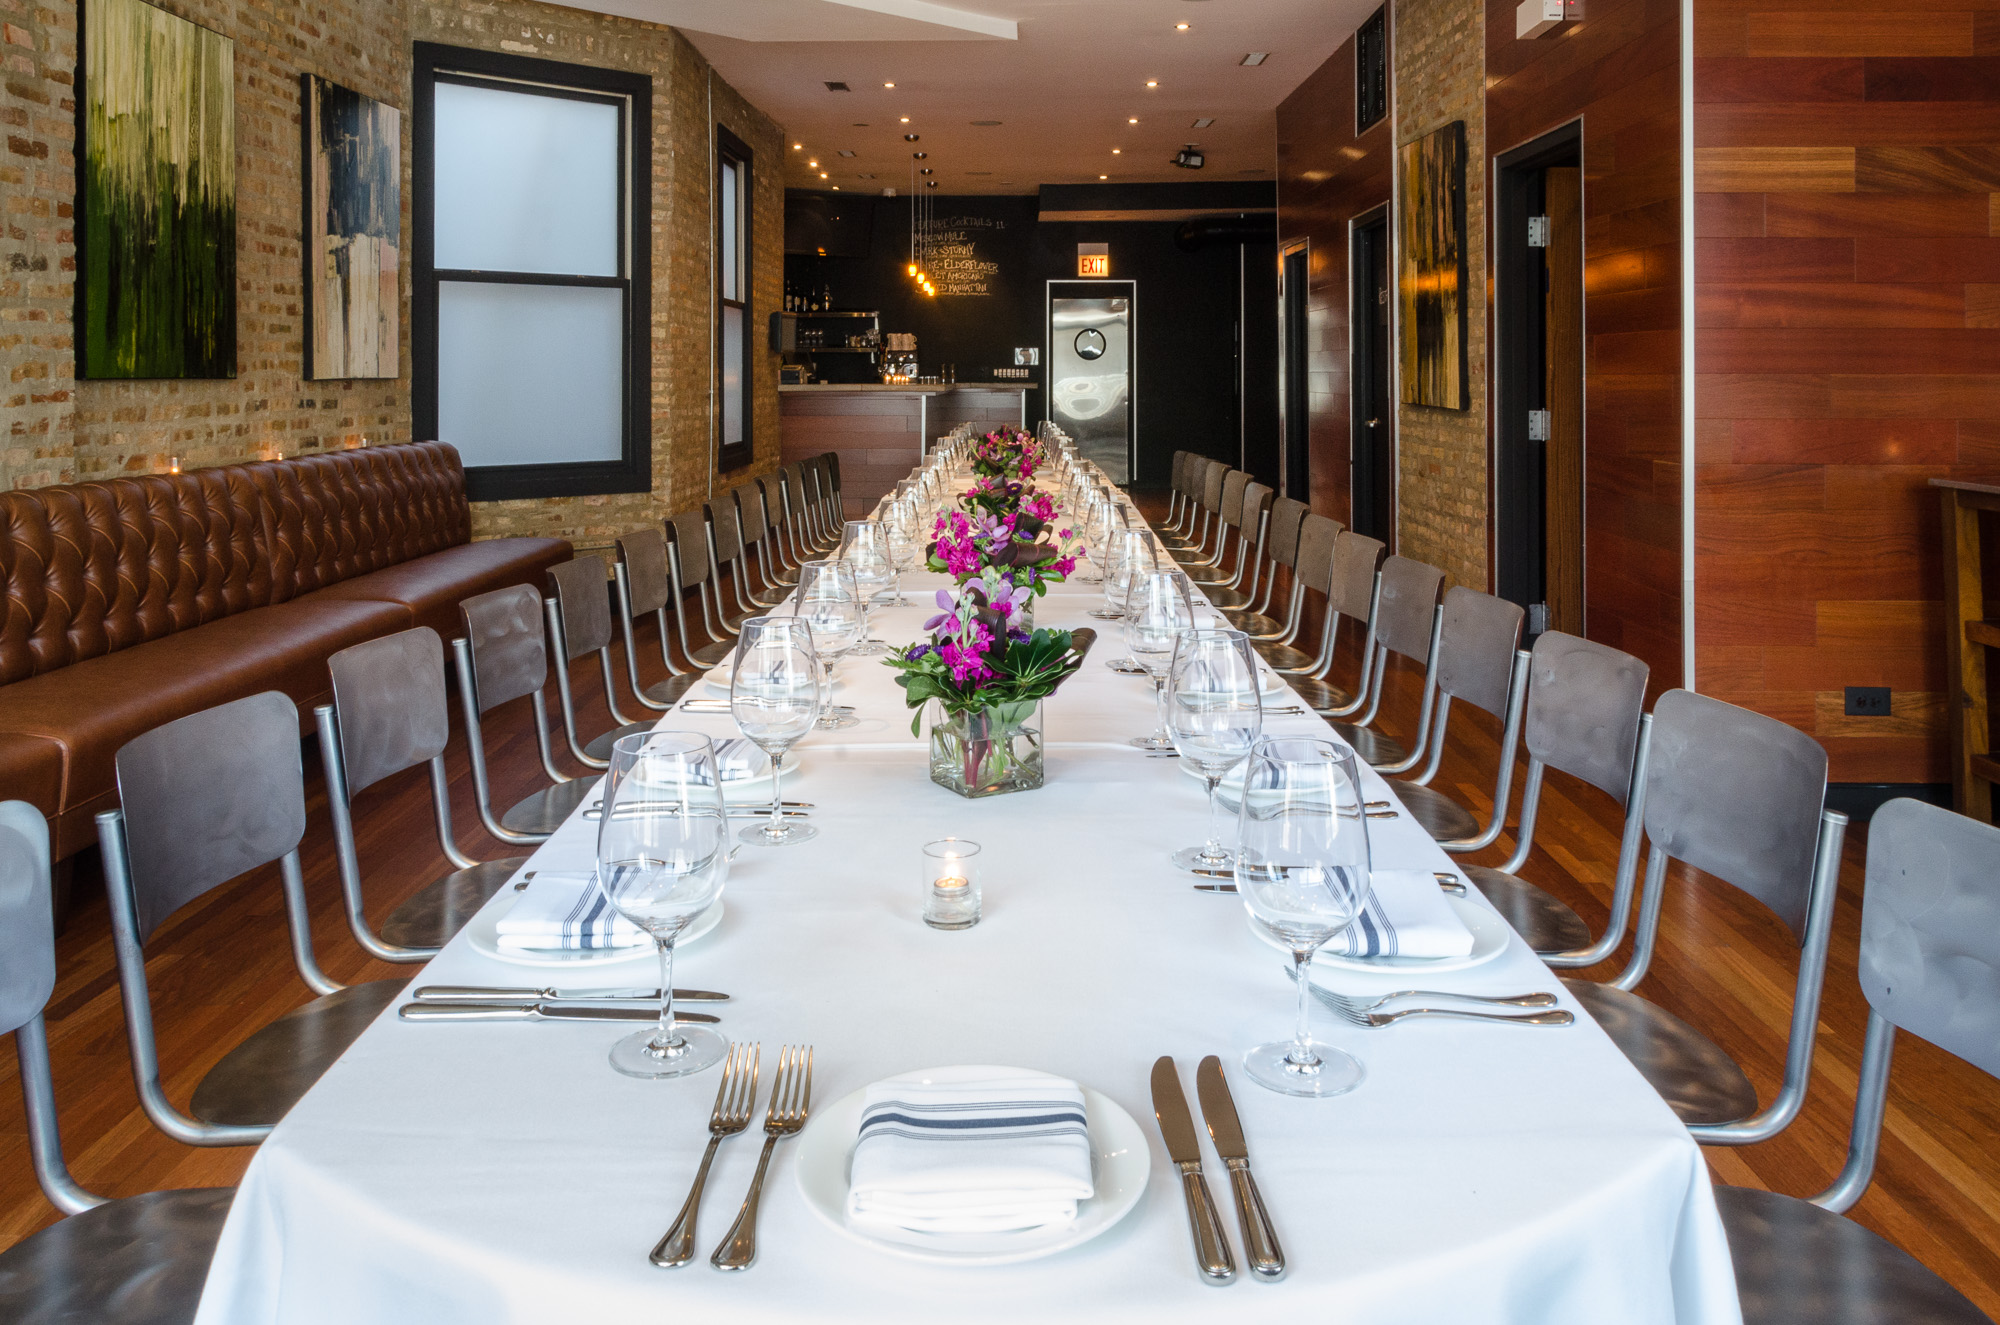 The Bristol Restaurant - Private Dining Room